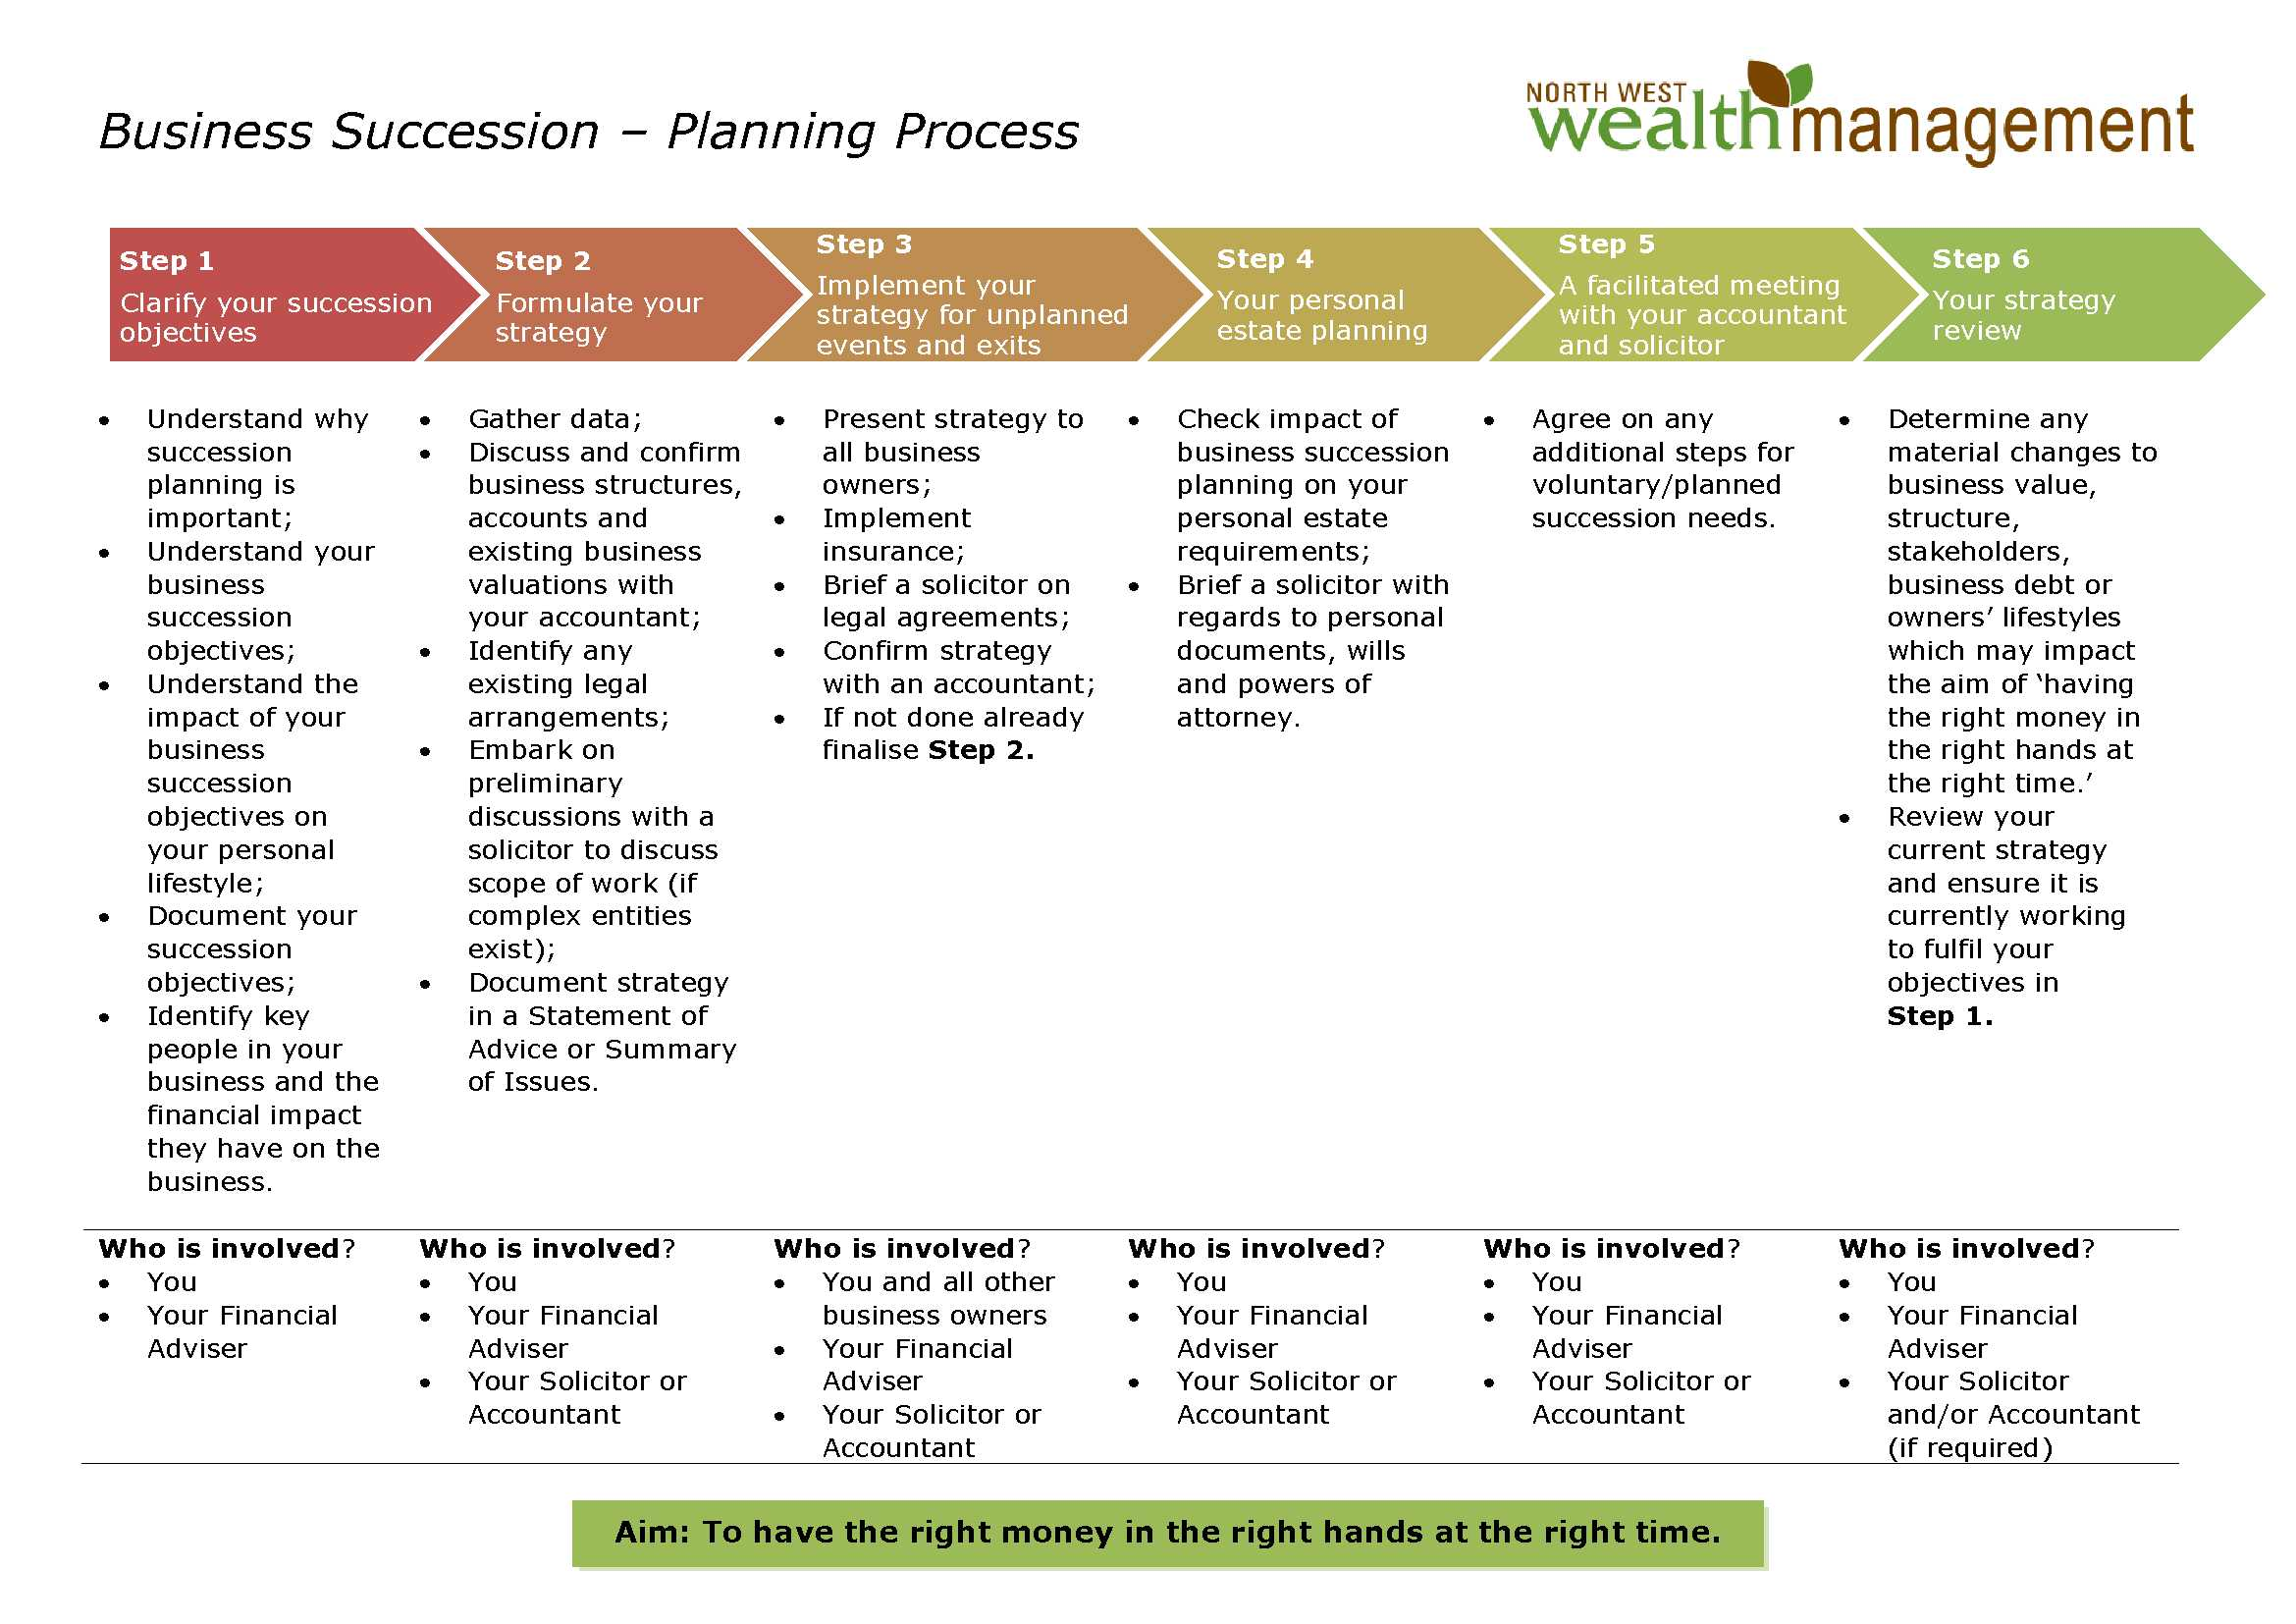 Business Succession Planning Process